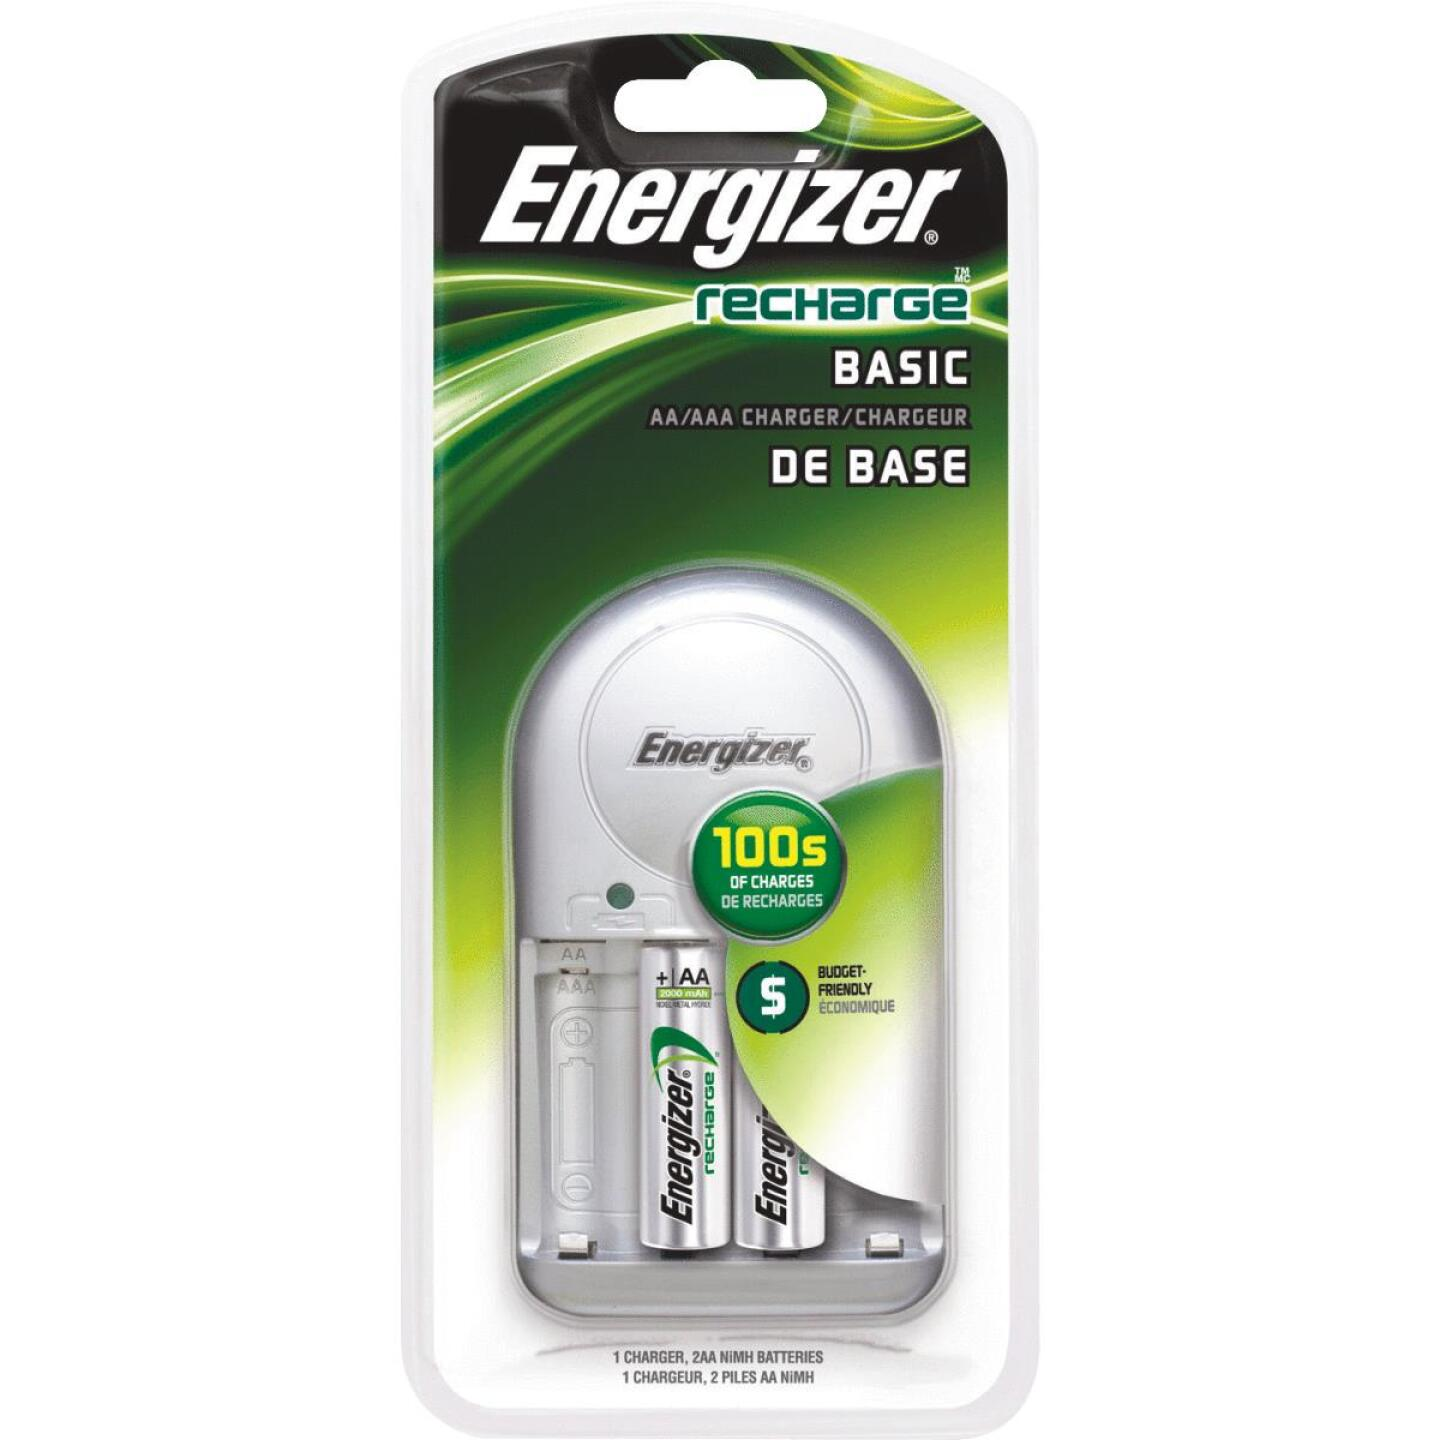 Energizer Recharge (2) or (4) AA, or AAA NiMH Value Battery Charger Image 1